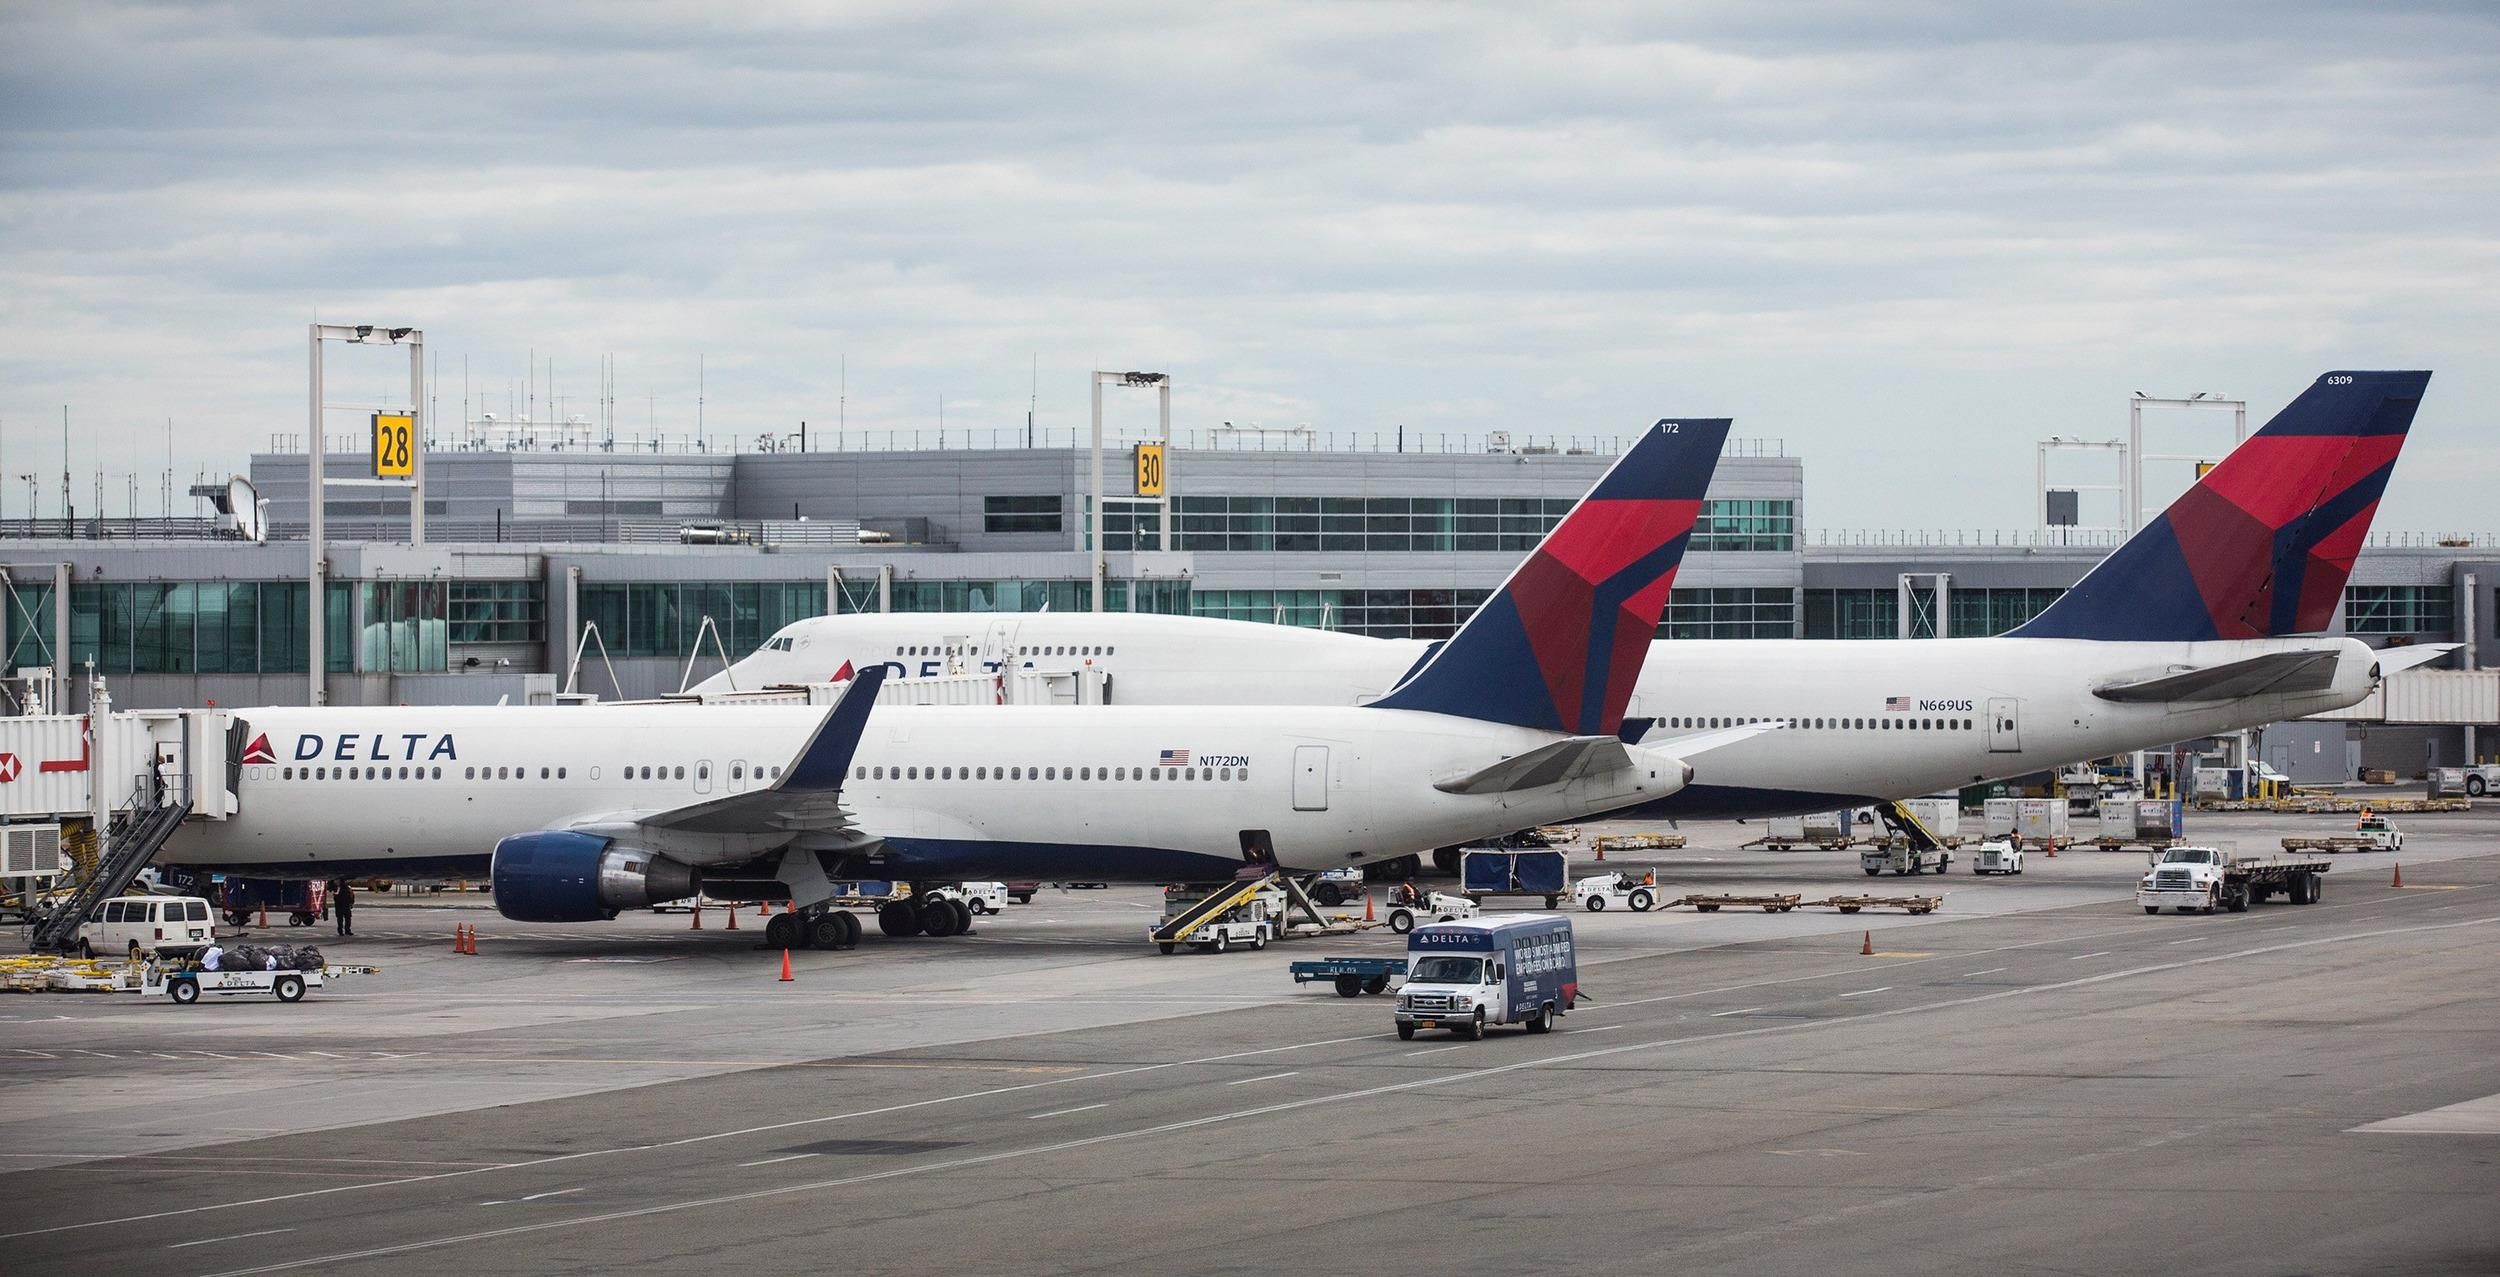 Image: Delta Air Lines again led the pack in bag fees, raising $833 million last year.